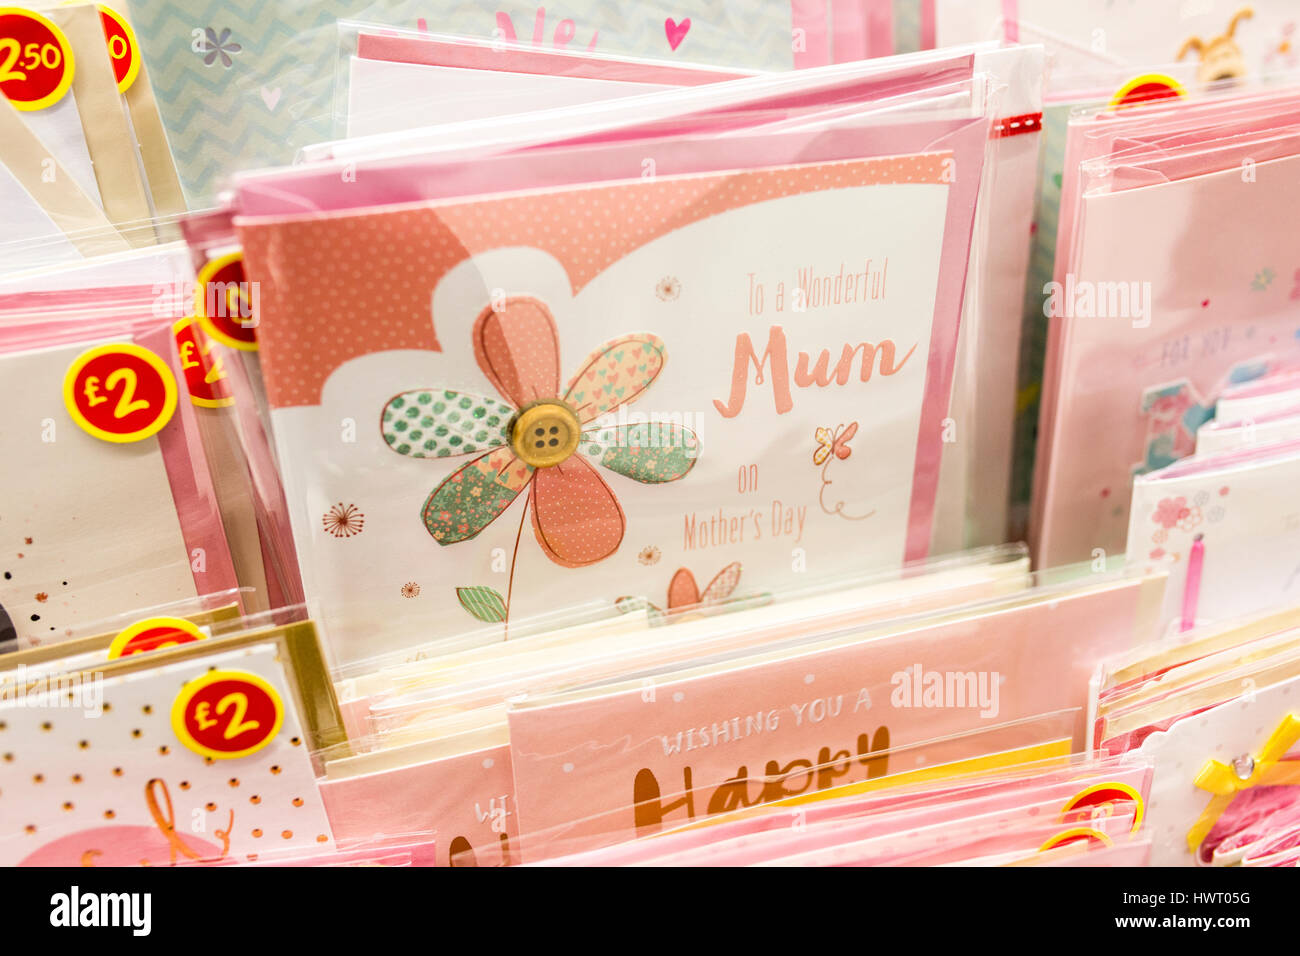 Mother's Day cards for sale in a British supermarket - Stock Image